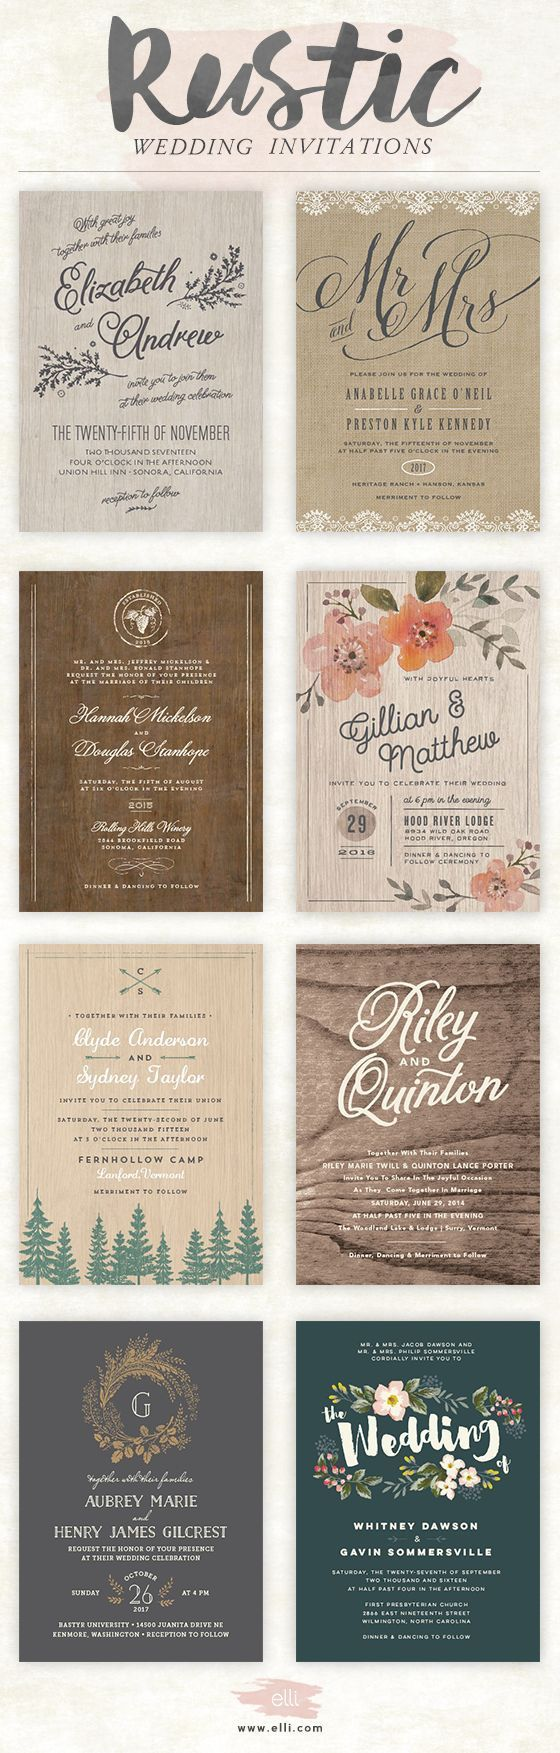 invitation wording for networking event%0A Rustic wedding invitations    Bella Collina Weddings